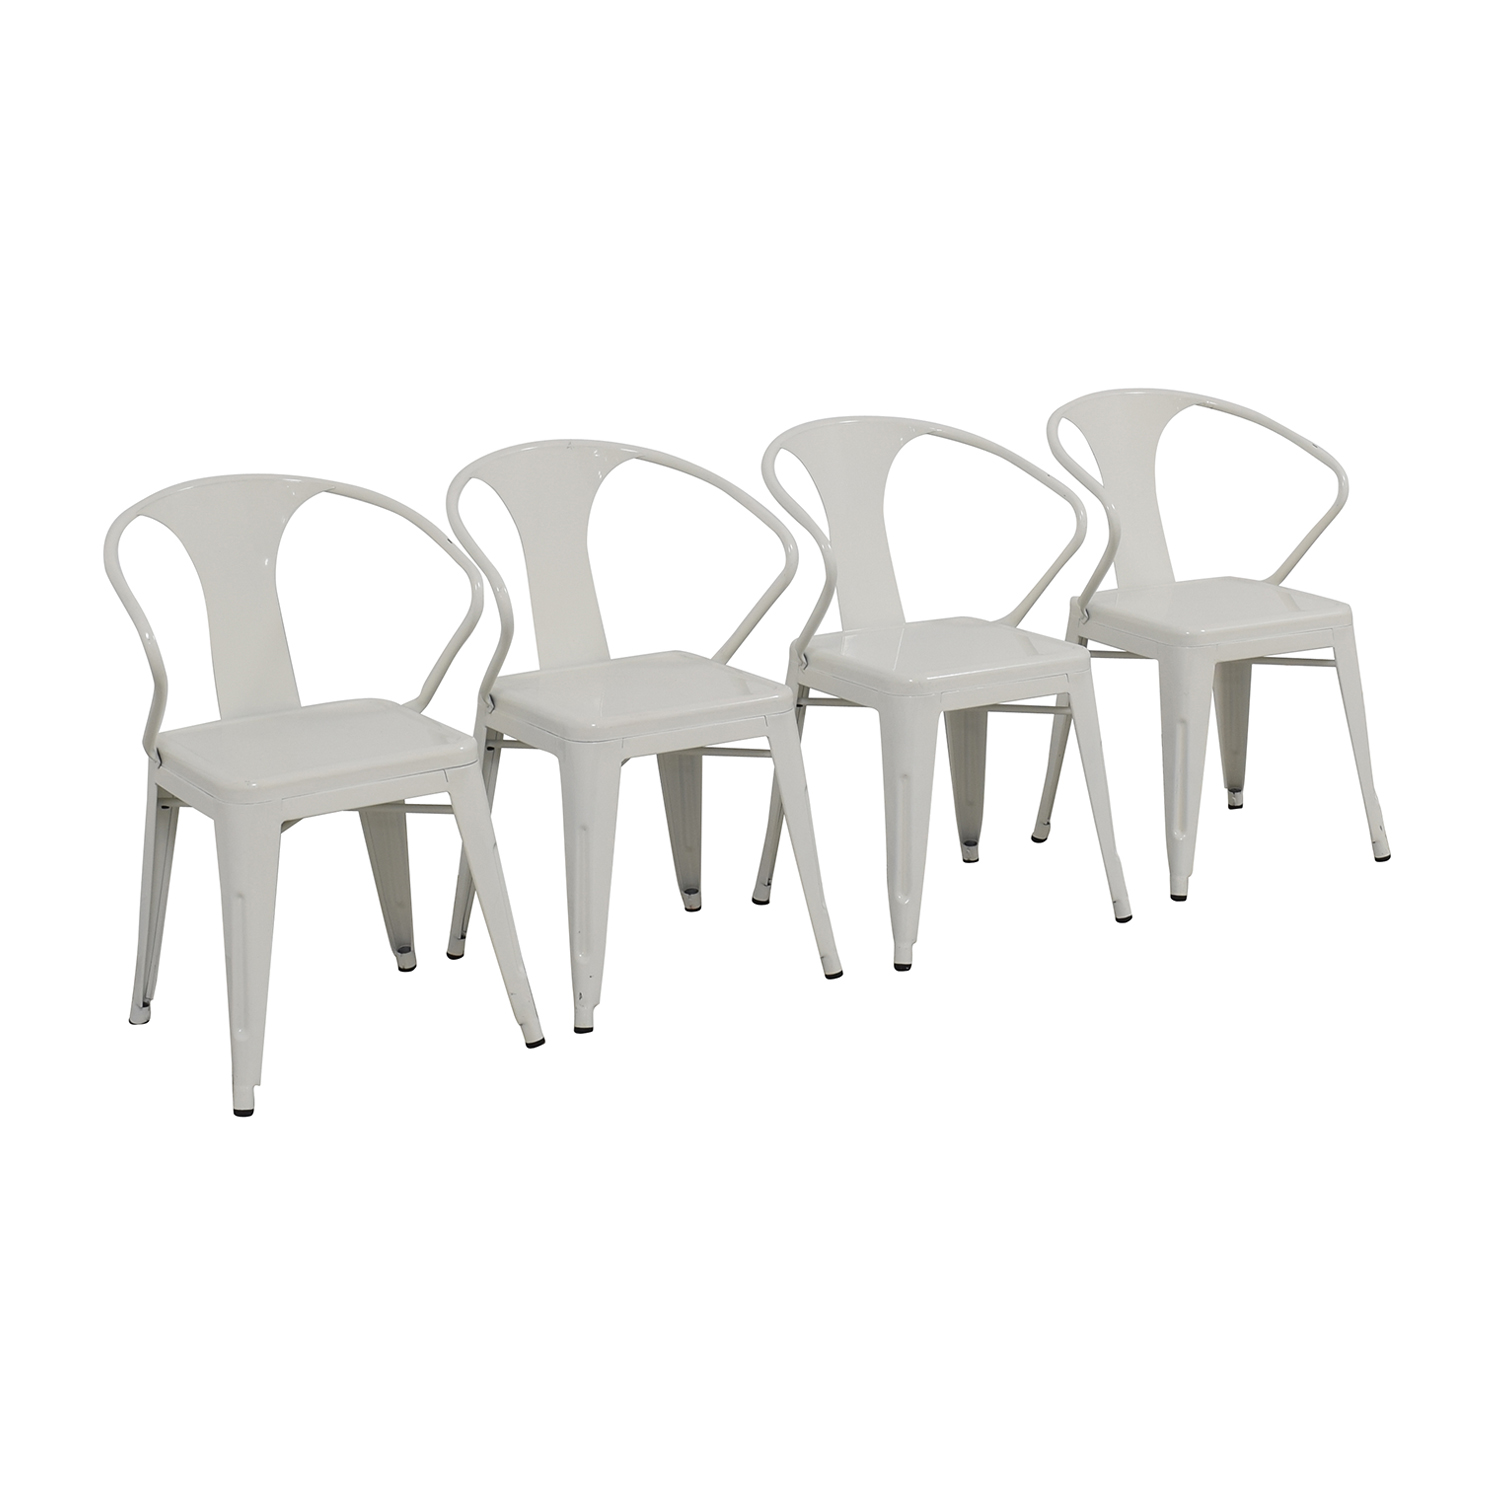 dining chairs overstock curved lounge chair plans 74 off white european